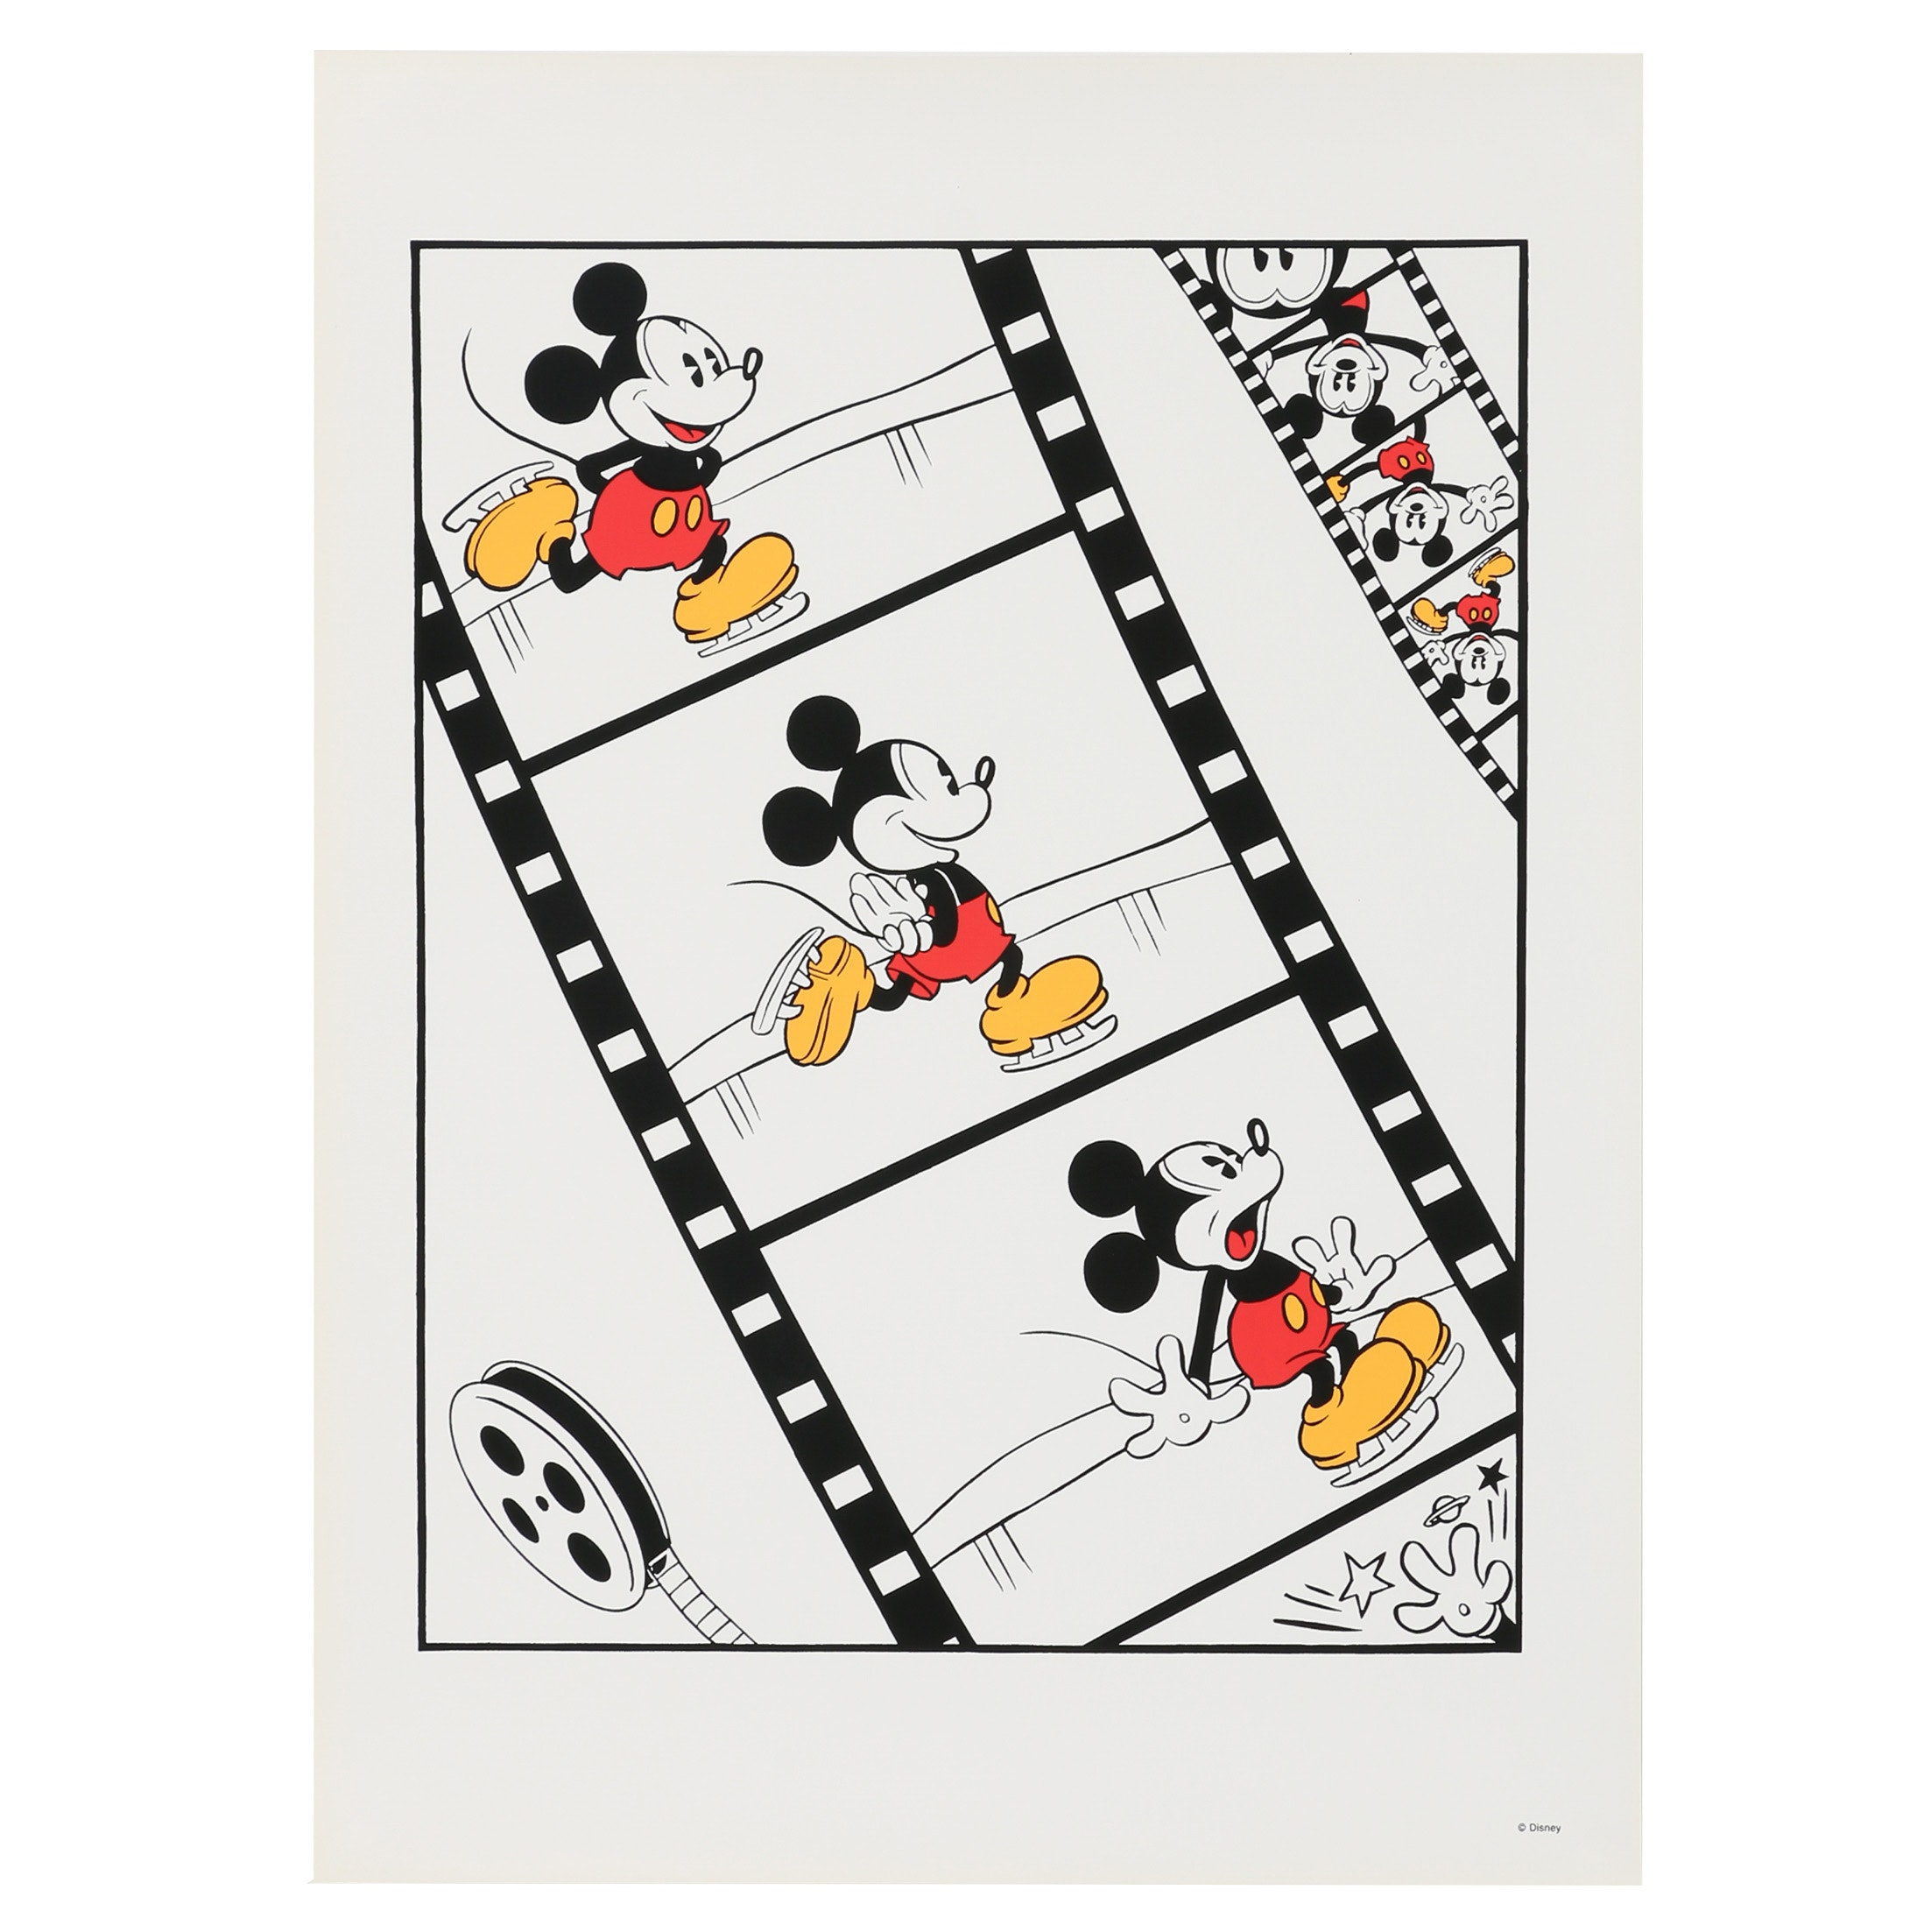 Sowa and Reiser Serigraph of Mickey Mouse on Ice Skates